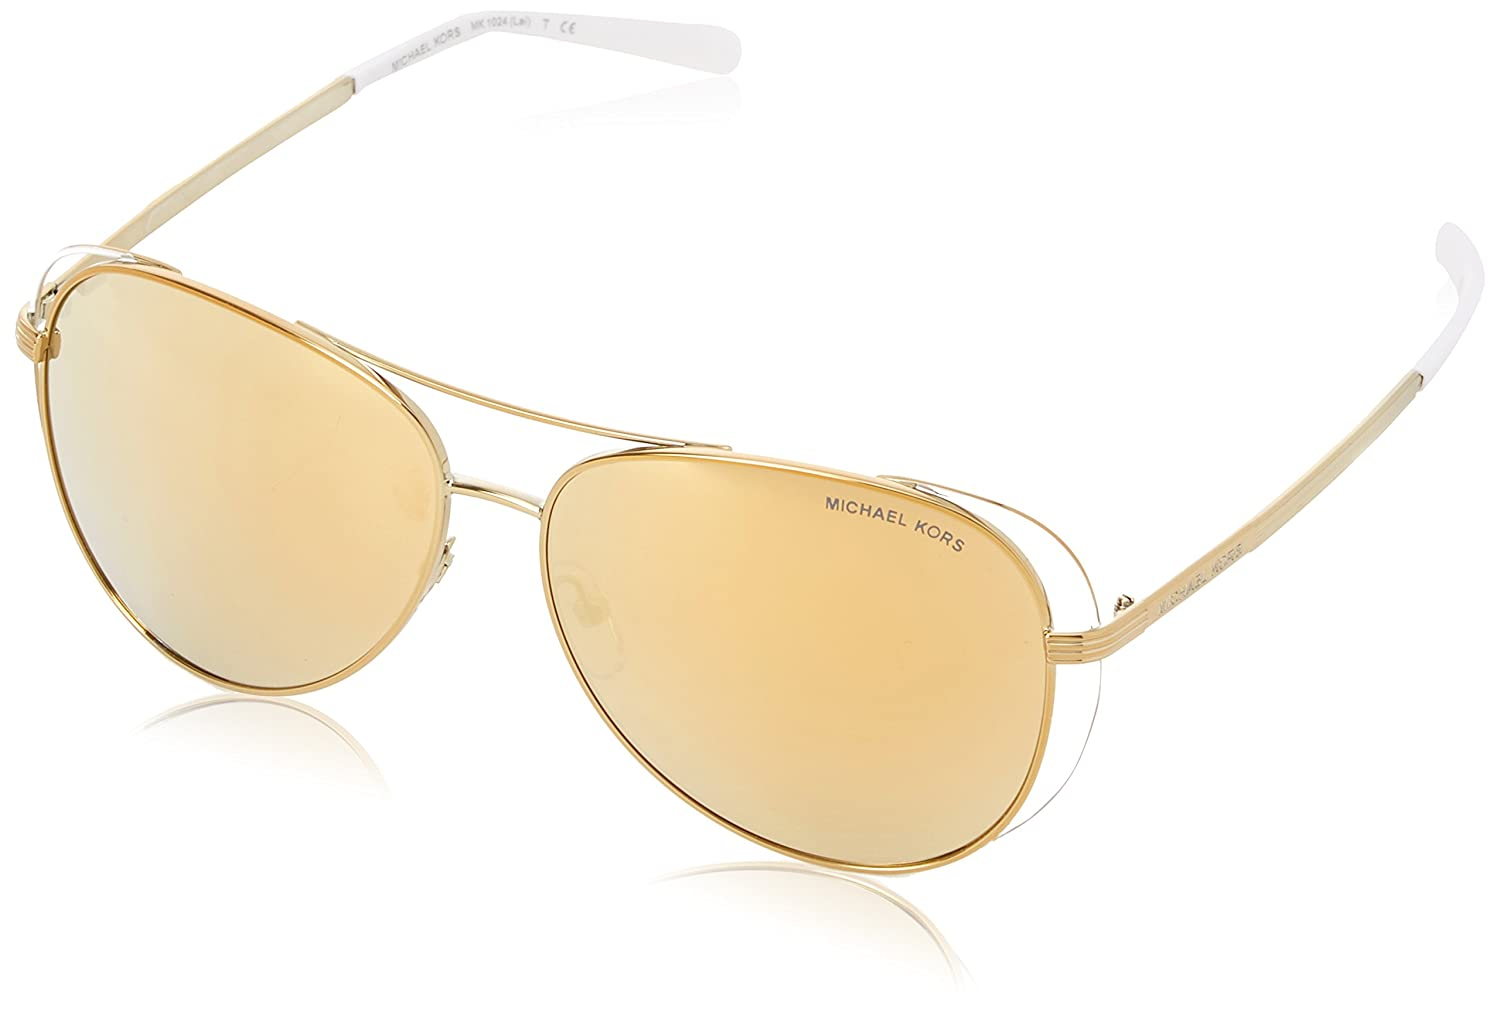 cce17ff99de Michael Kors MK1024 11927P Pale Gold White MK1024 Pilot Sunglasses Lens  Categor at Amazon Women s Clothing store